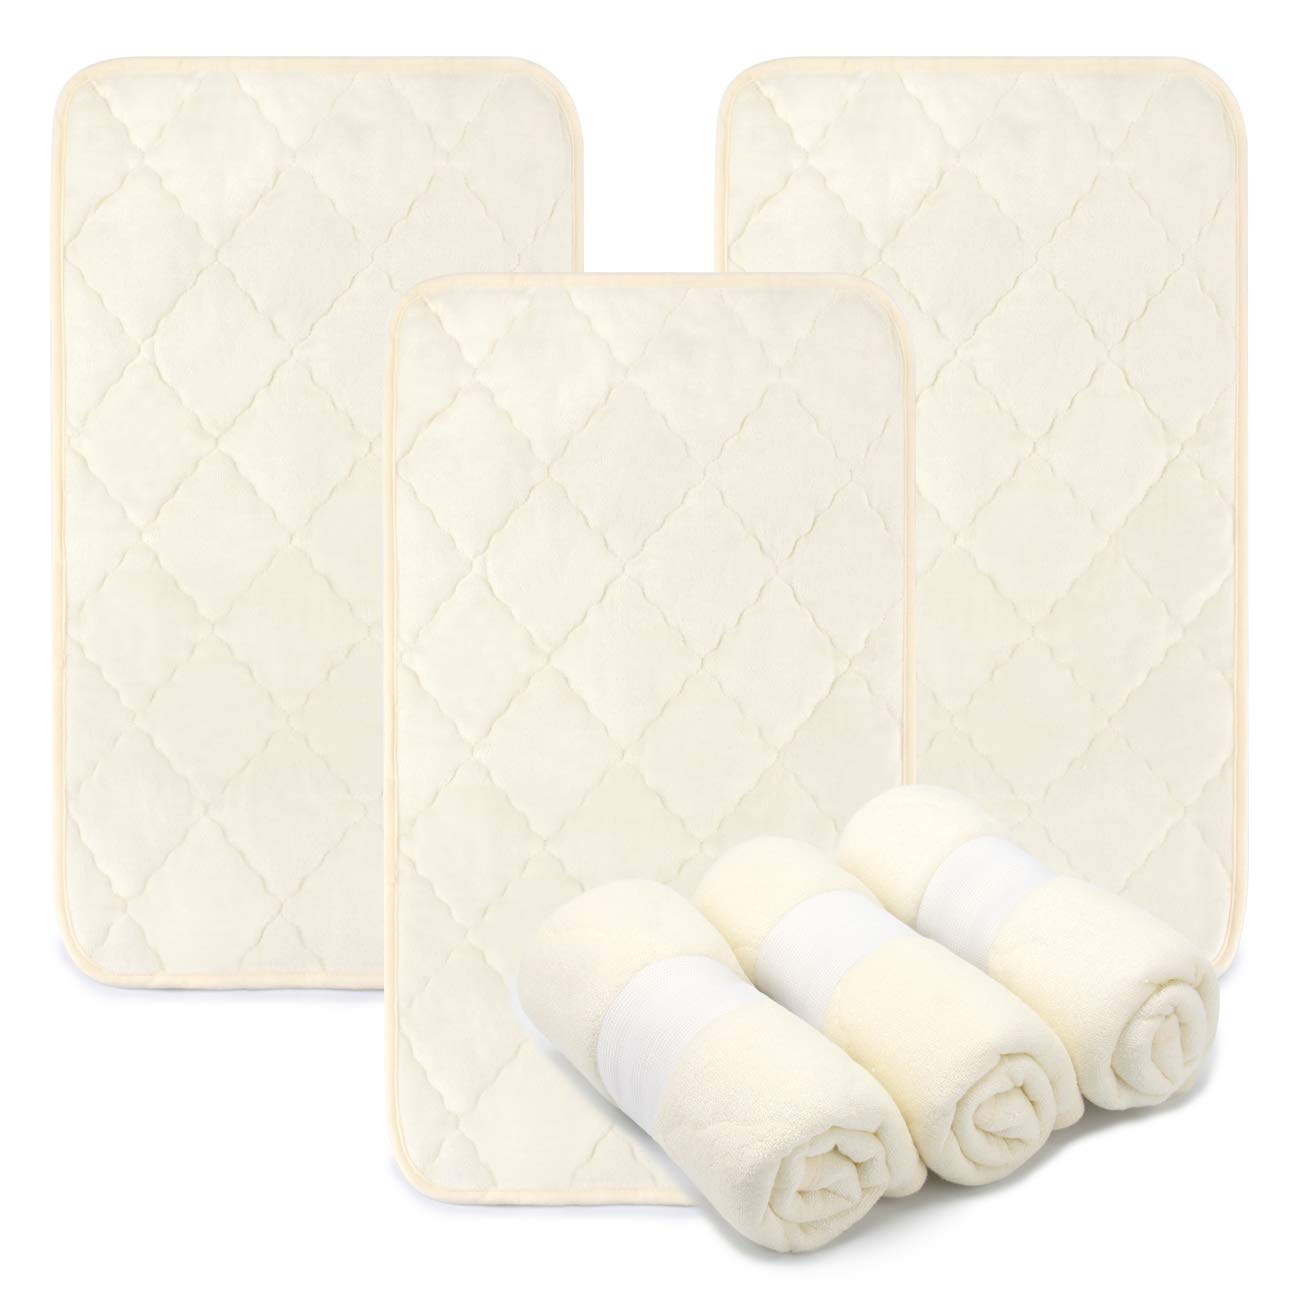 PEKITAS 3 Pack Bamboo Changing Pad Liners 27.5 x 13.8 Inches Quilted Thick Large Waterproof Portable Baby Rhombus Pattern